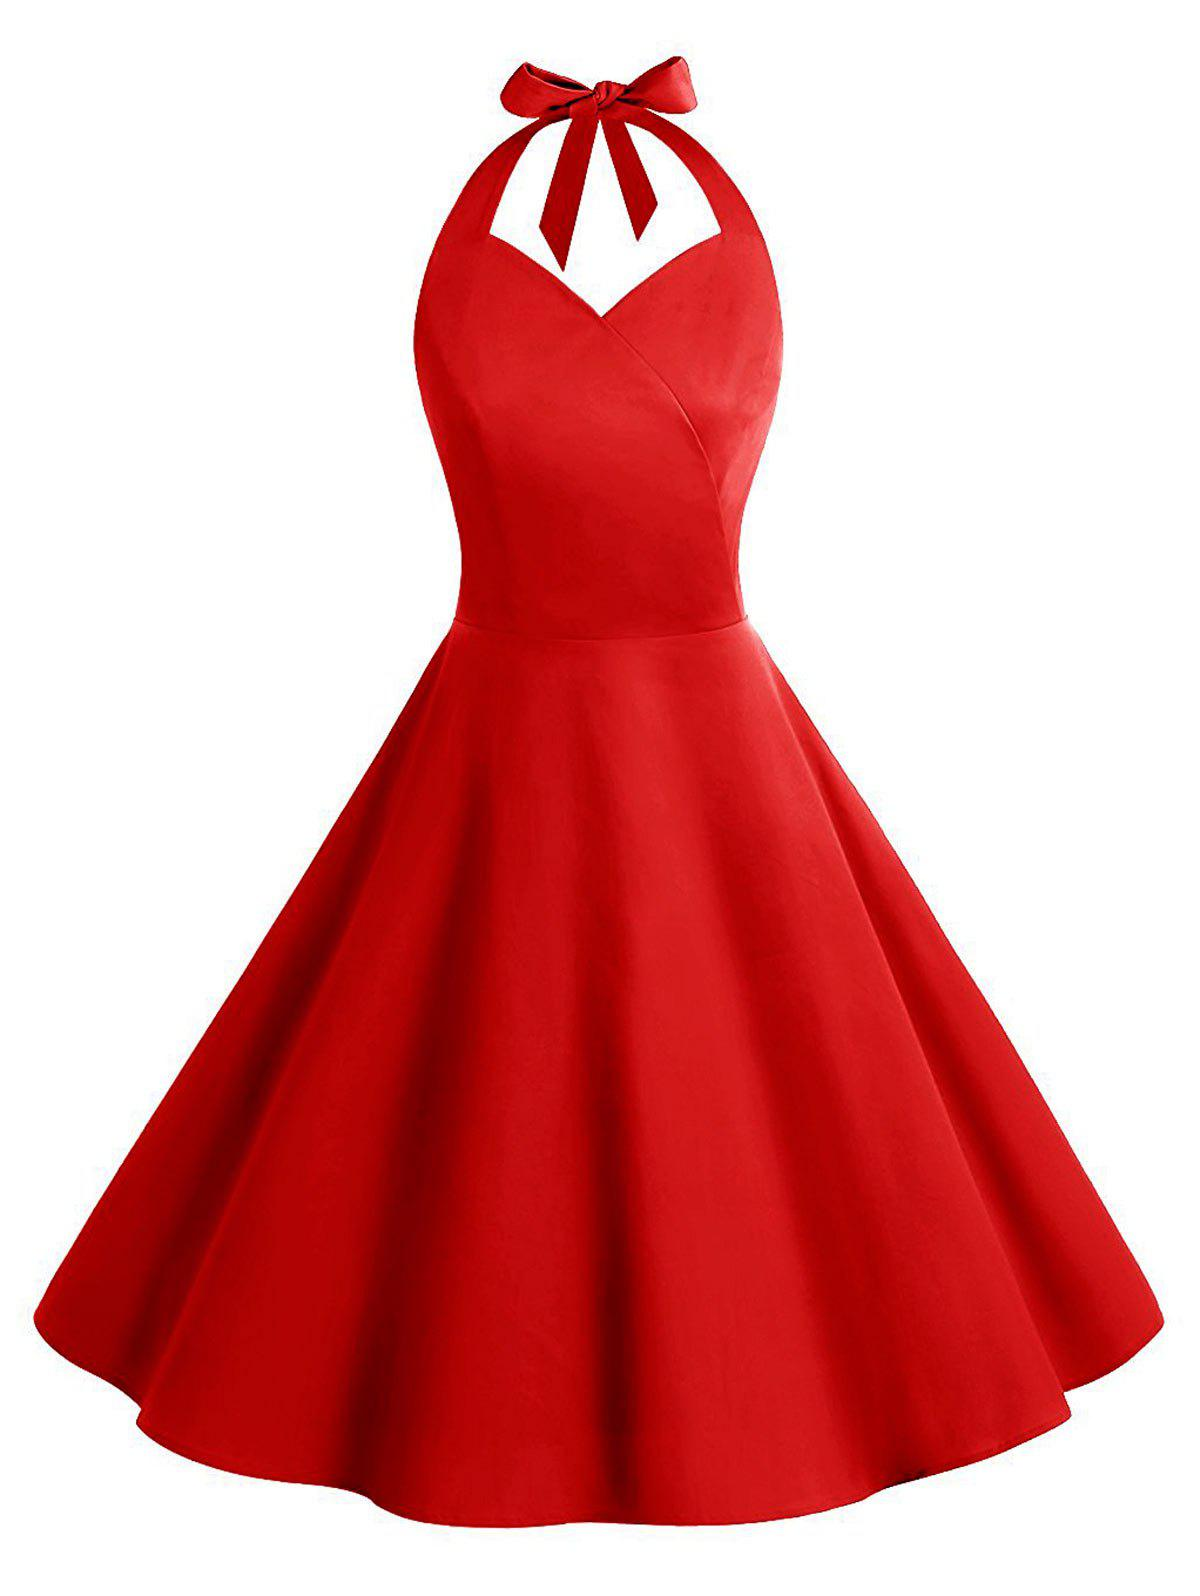 Vintage Backless Halter Skater Party DressWOMEN<br><br>Size: 2XL; Color: RED; Style: Vintage; Material: Cotton,Polyester; Silhouette: A-Line; Dress Type: Skater Dress,Swing Dress; Dresses Length: Knee-Length; Neckline: Halter; Sleeve Length: Sleeveless; Embellishment: Backless; Pattern Type: Solid; With Belt: No; Season: Summer; Weight: 0.4300kg; Package Contents: 1 x Dress;